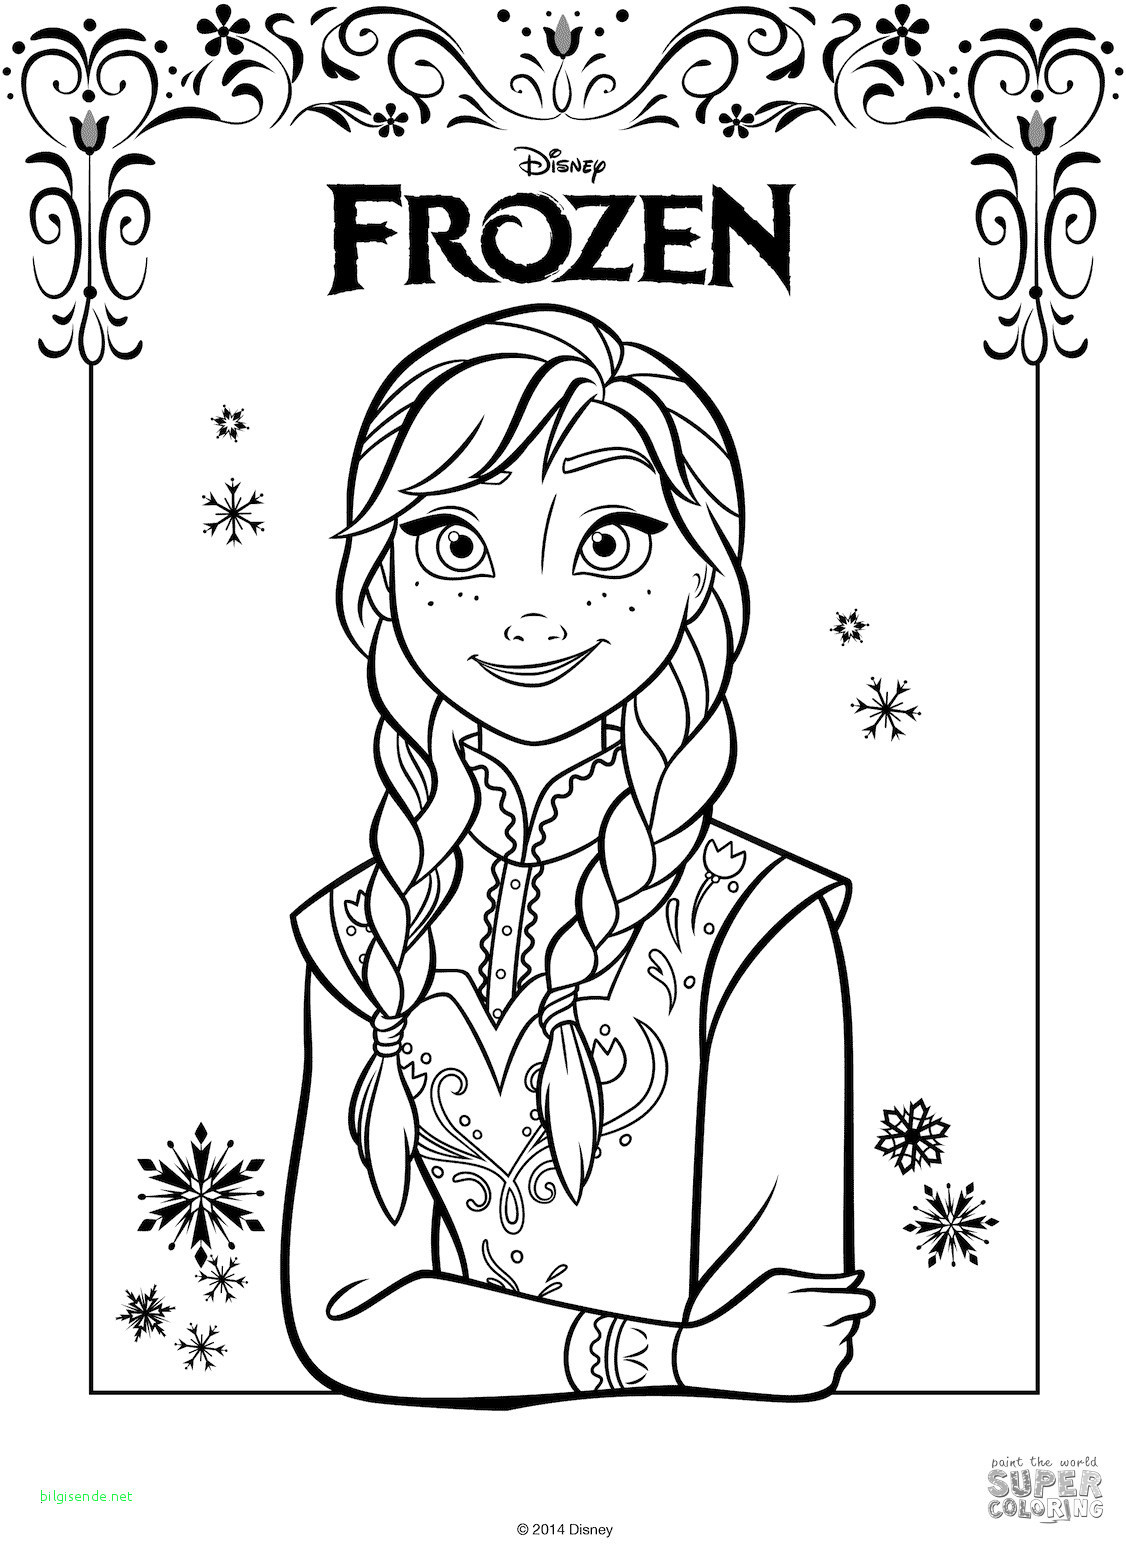 Disney Princess Ausmalbilder Frisch Best Coloring Disney Princess Elsa and Anna Neu Ausmalbilder Anna Fotos